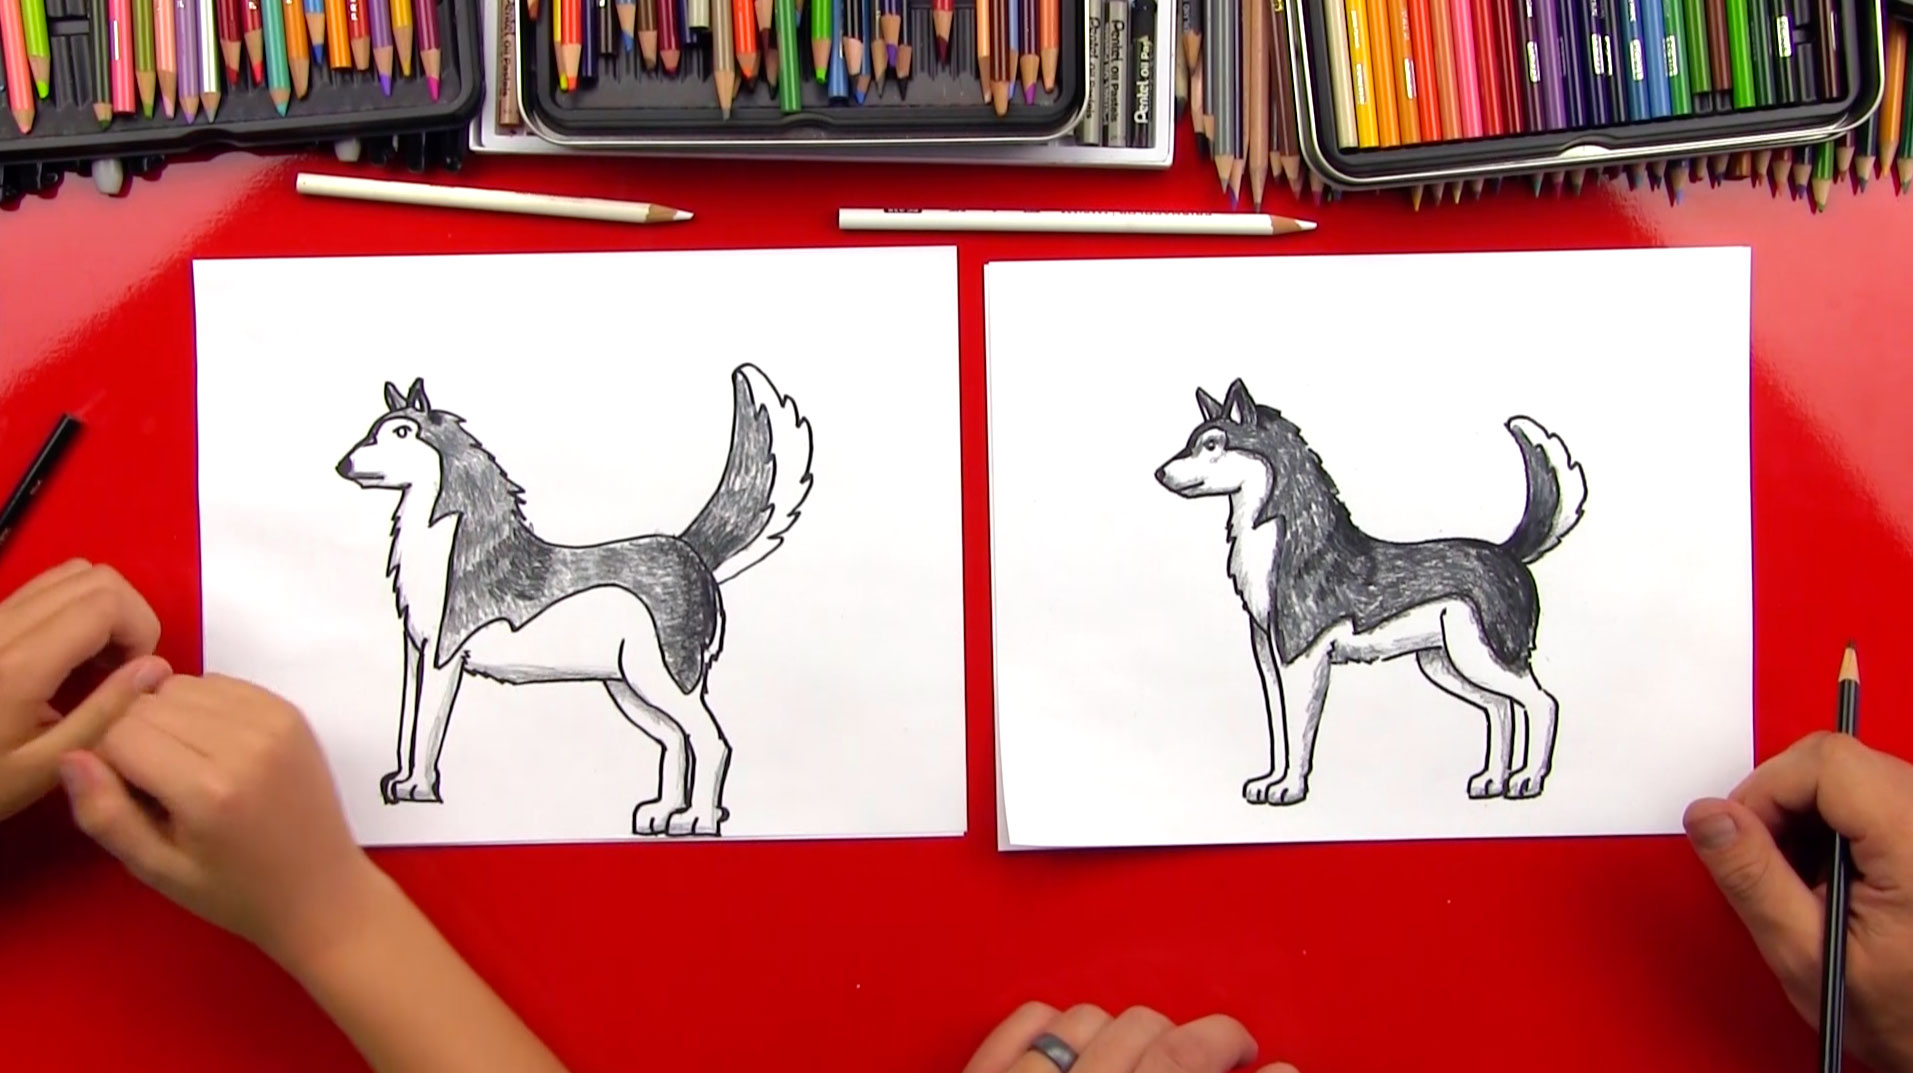 Epic Angry Birds Timelapse Drawings Cool Music: How To Draw A Realistic Husky